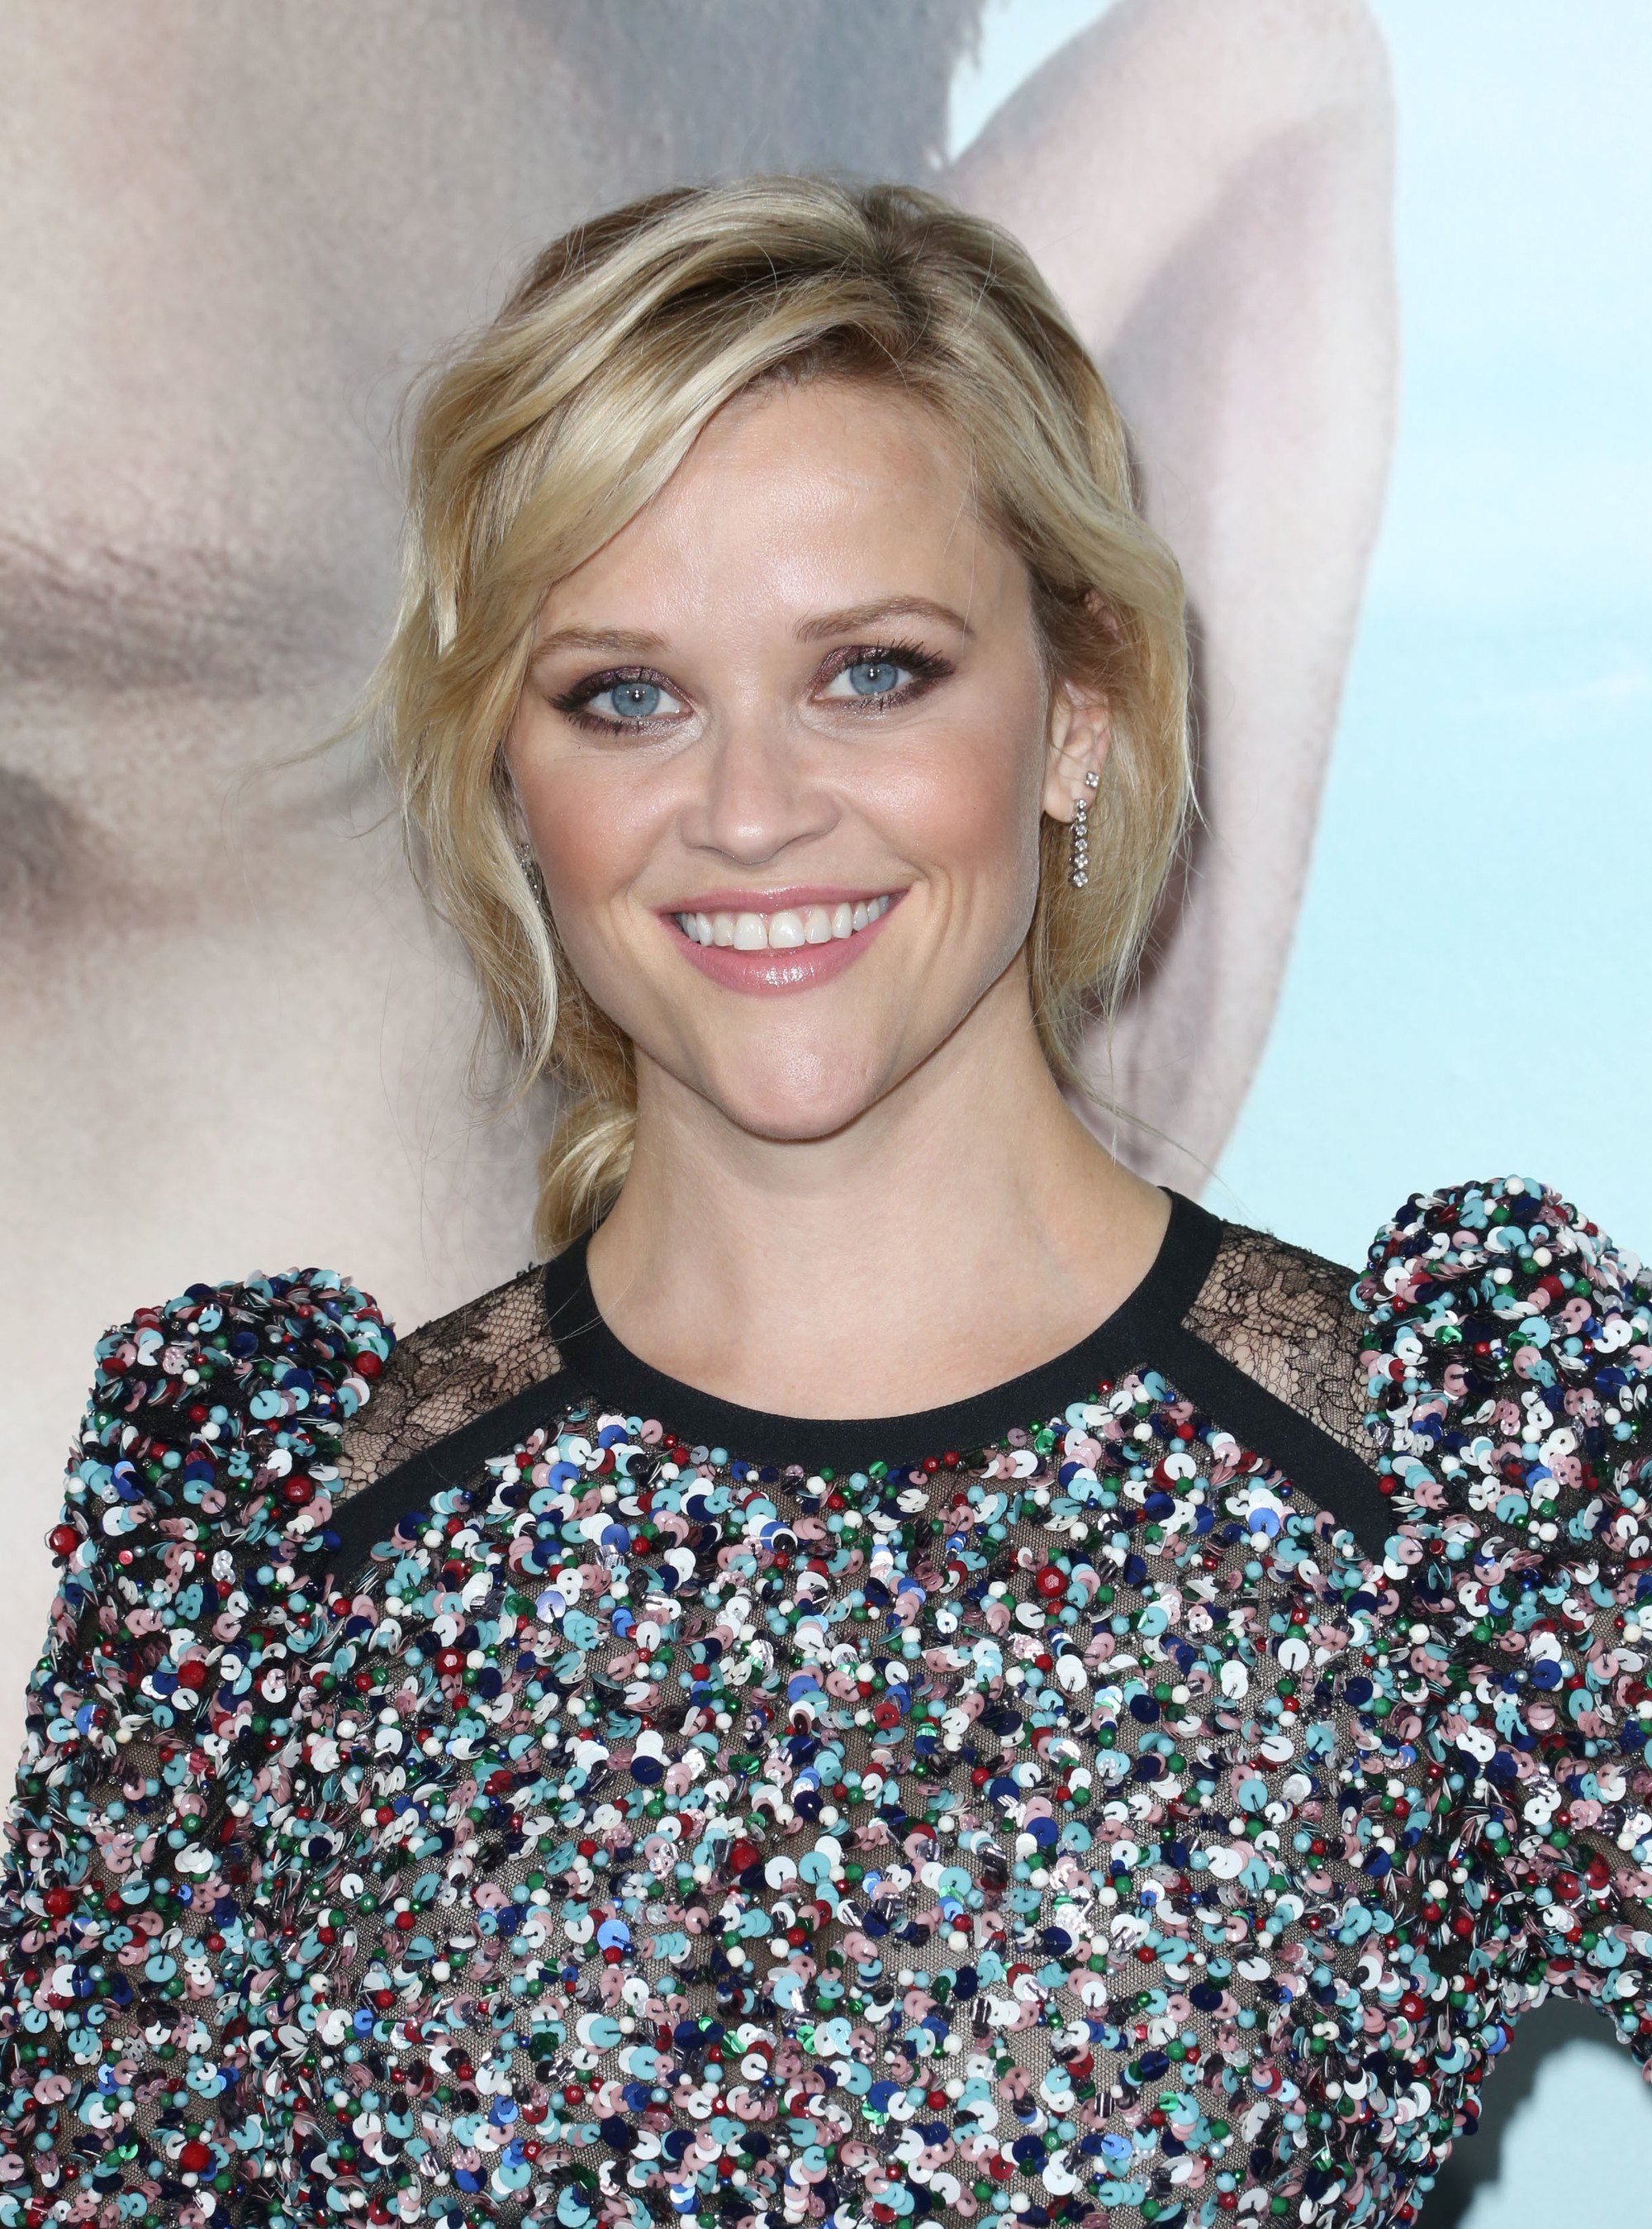 Reese Witherspoon with blonde wavy hair styled in a low ponytail with a sweeping side fringe.